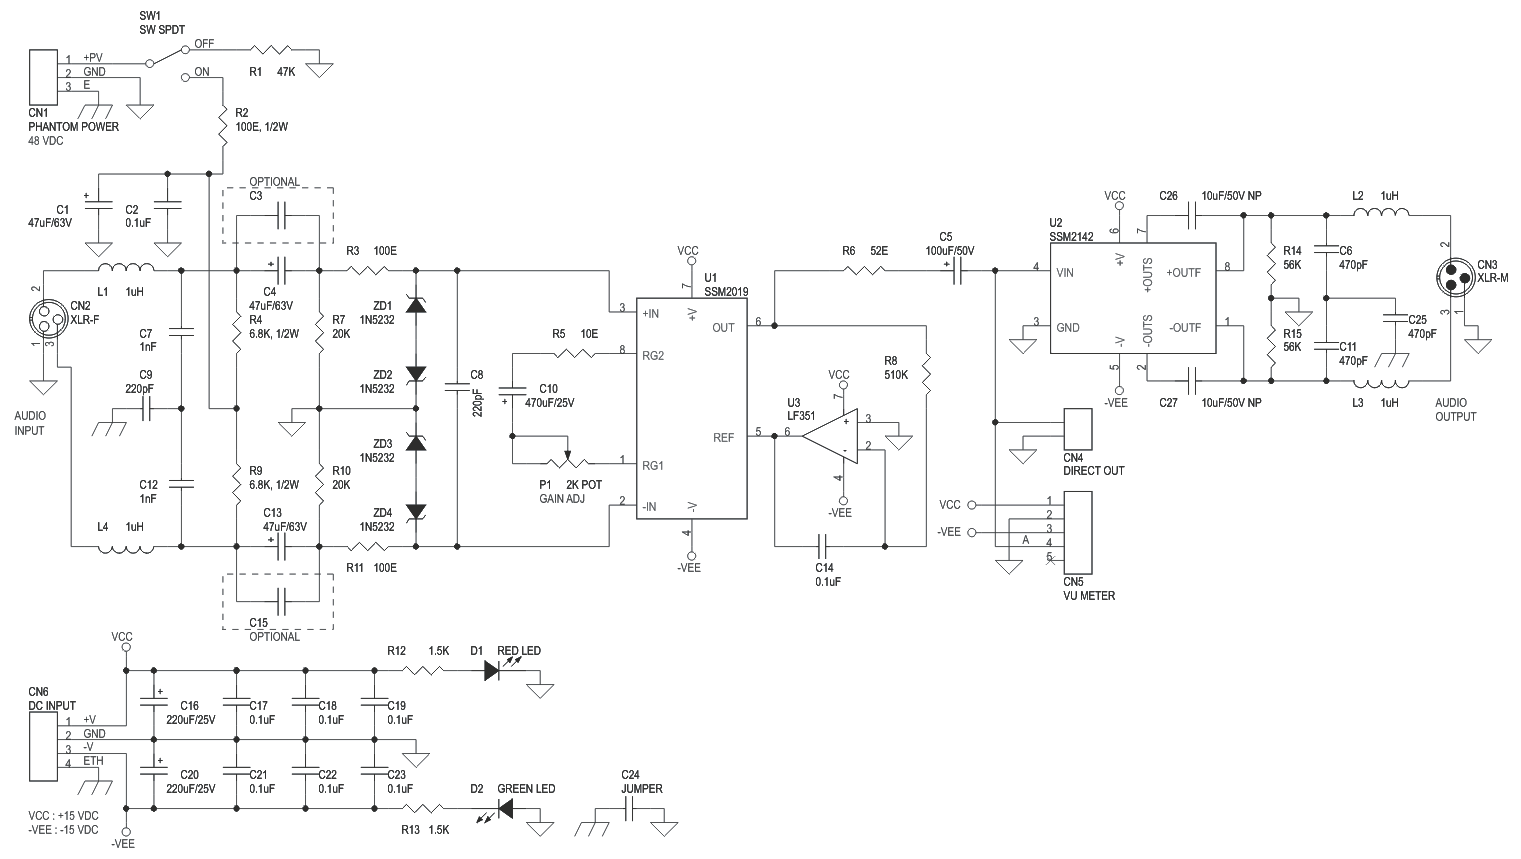 Pretone Low Volt Cost Circuit Diagram Super 5532 Ic Mic Preamplifire Wiring Library Hi End Microphone Pre Amplifier 3